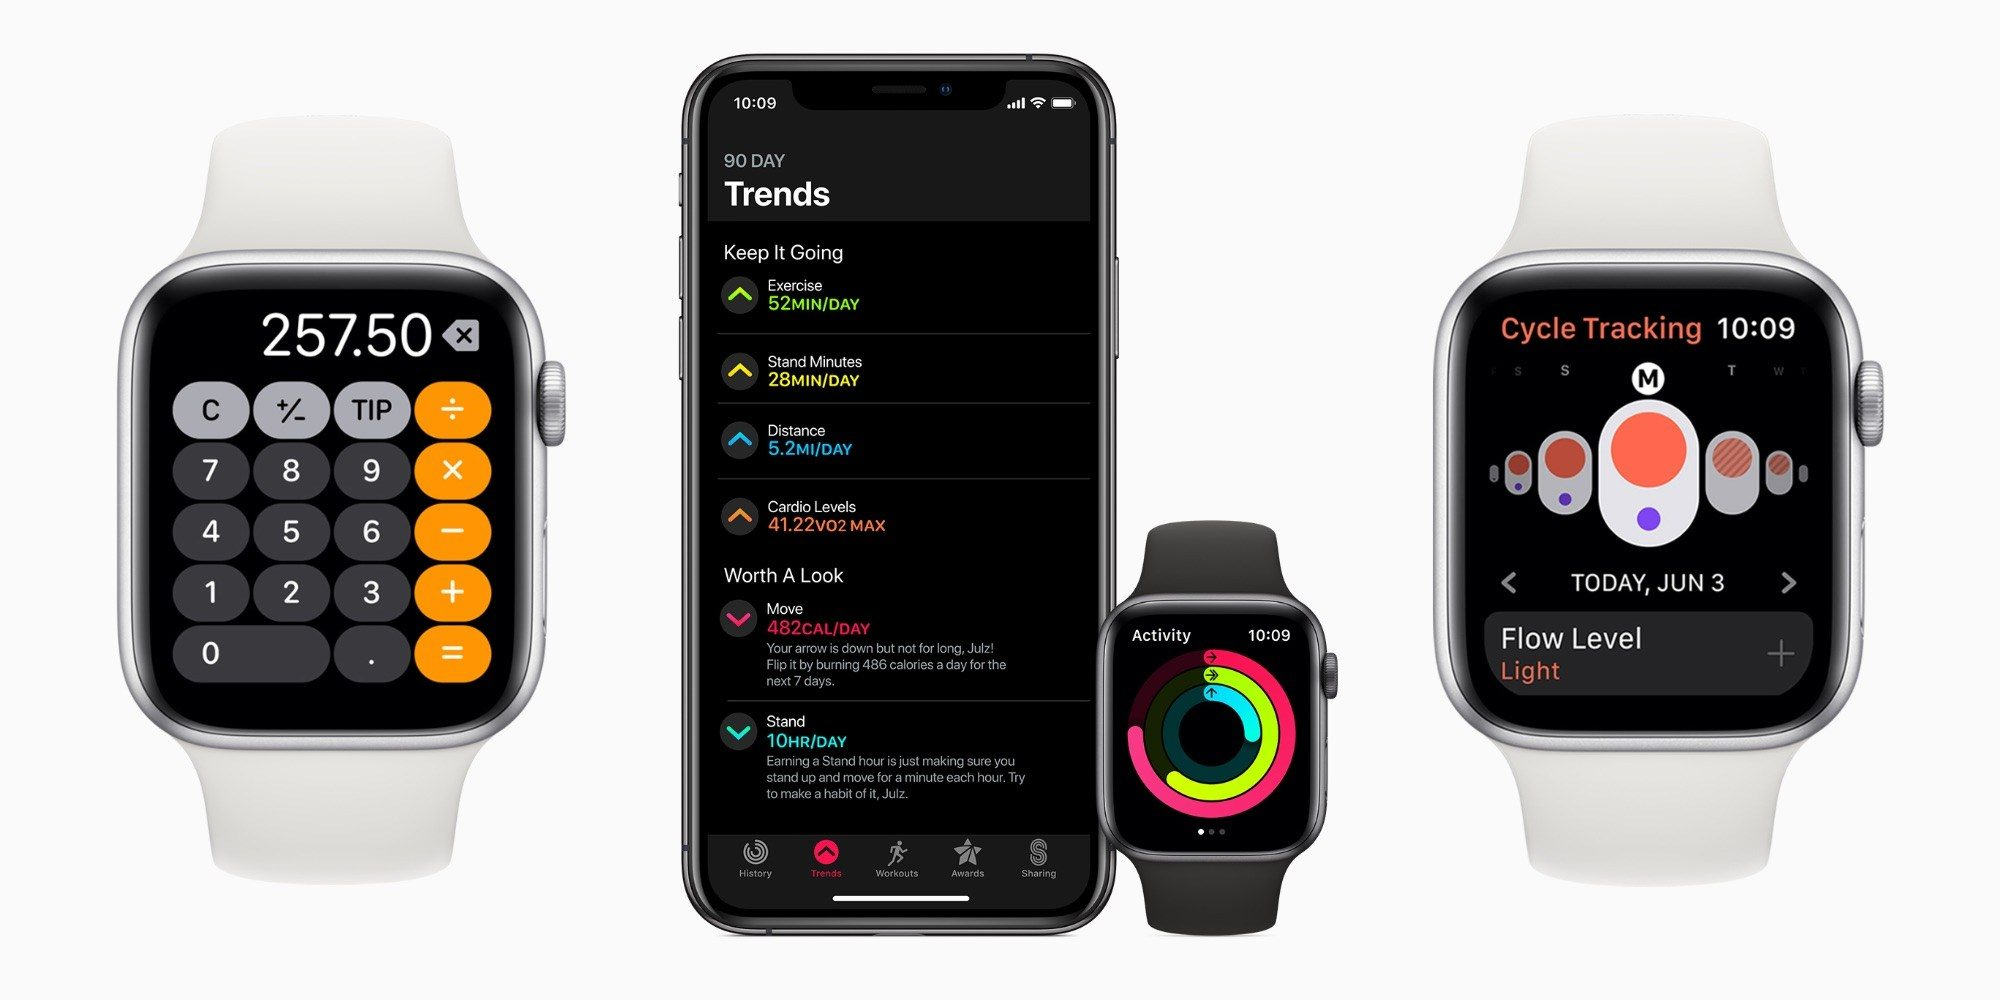 watchOS 6 Is Now Available with Top 6 New Features